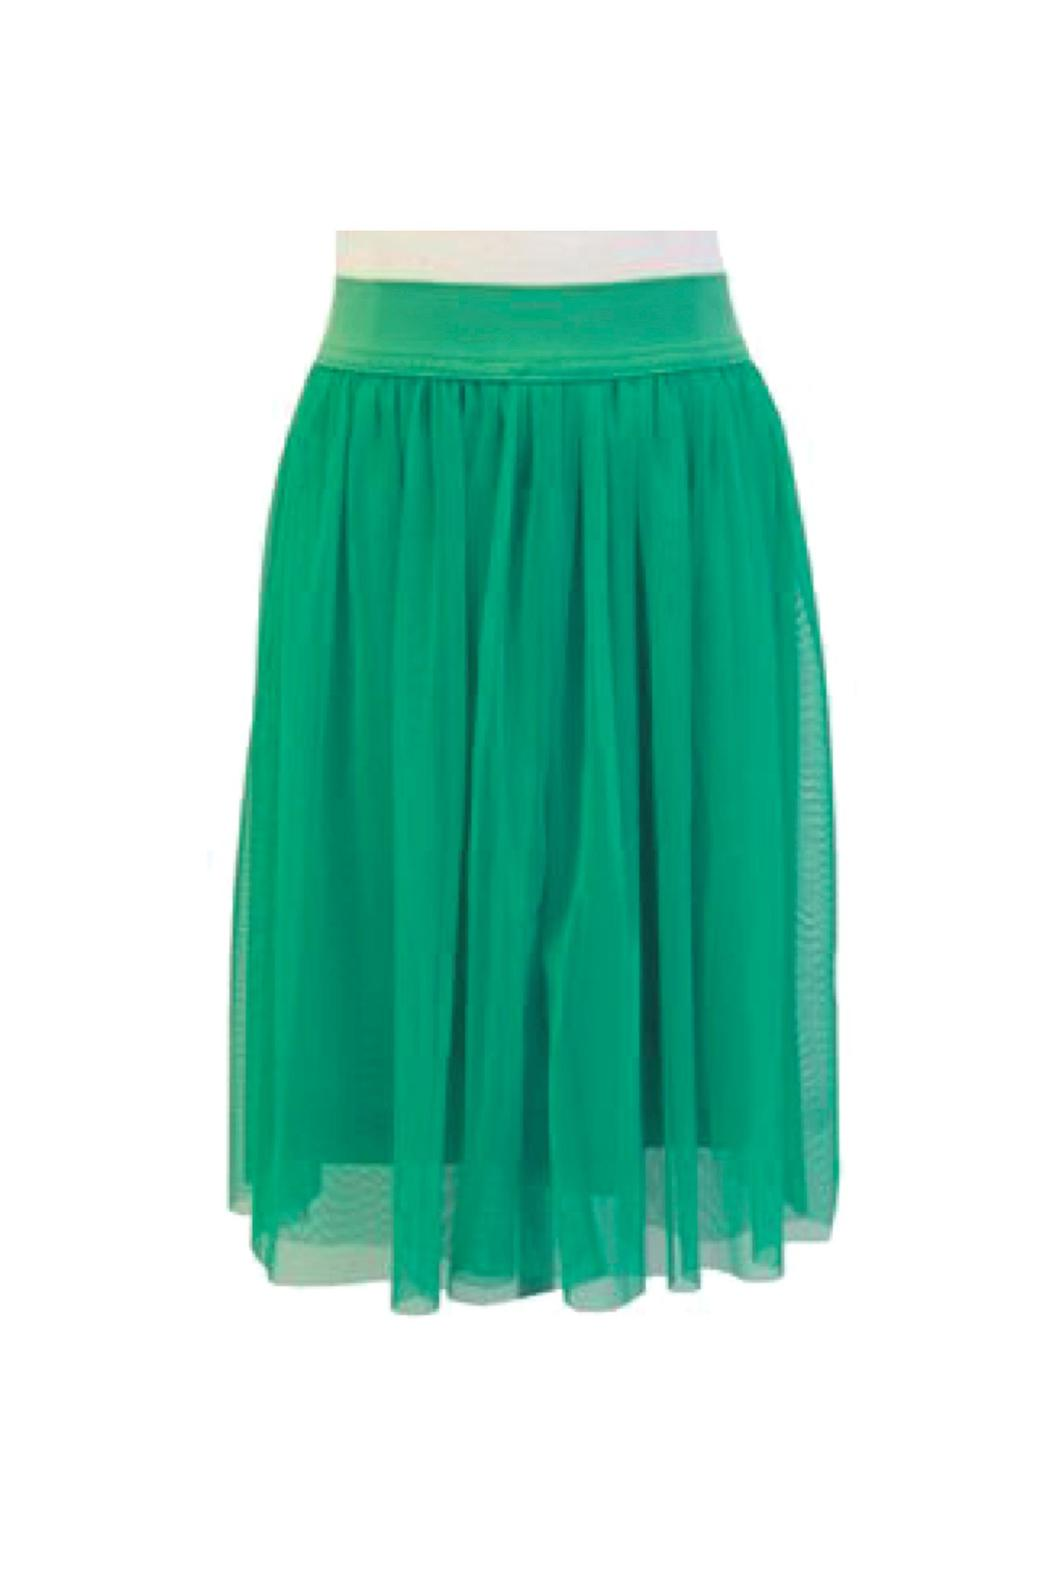 Kikiriki Short Tulle Skirt - Main Image